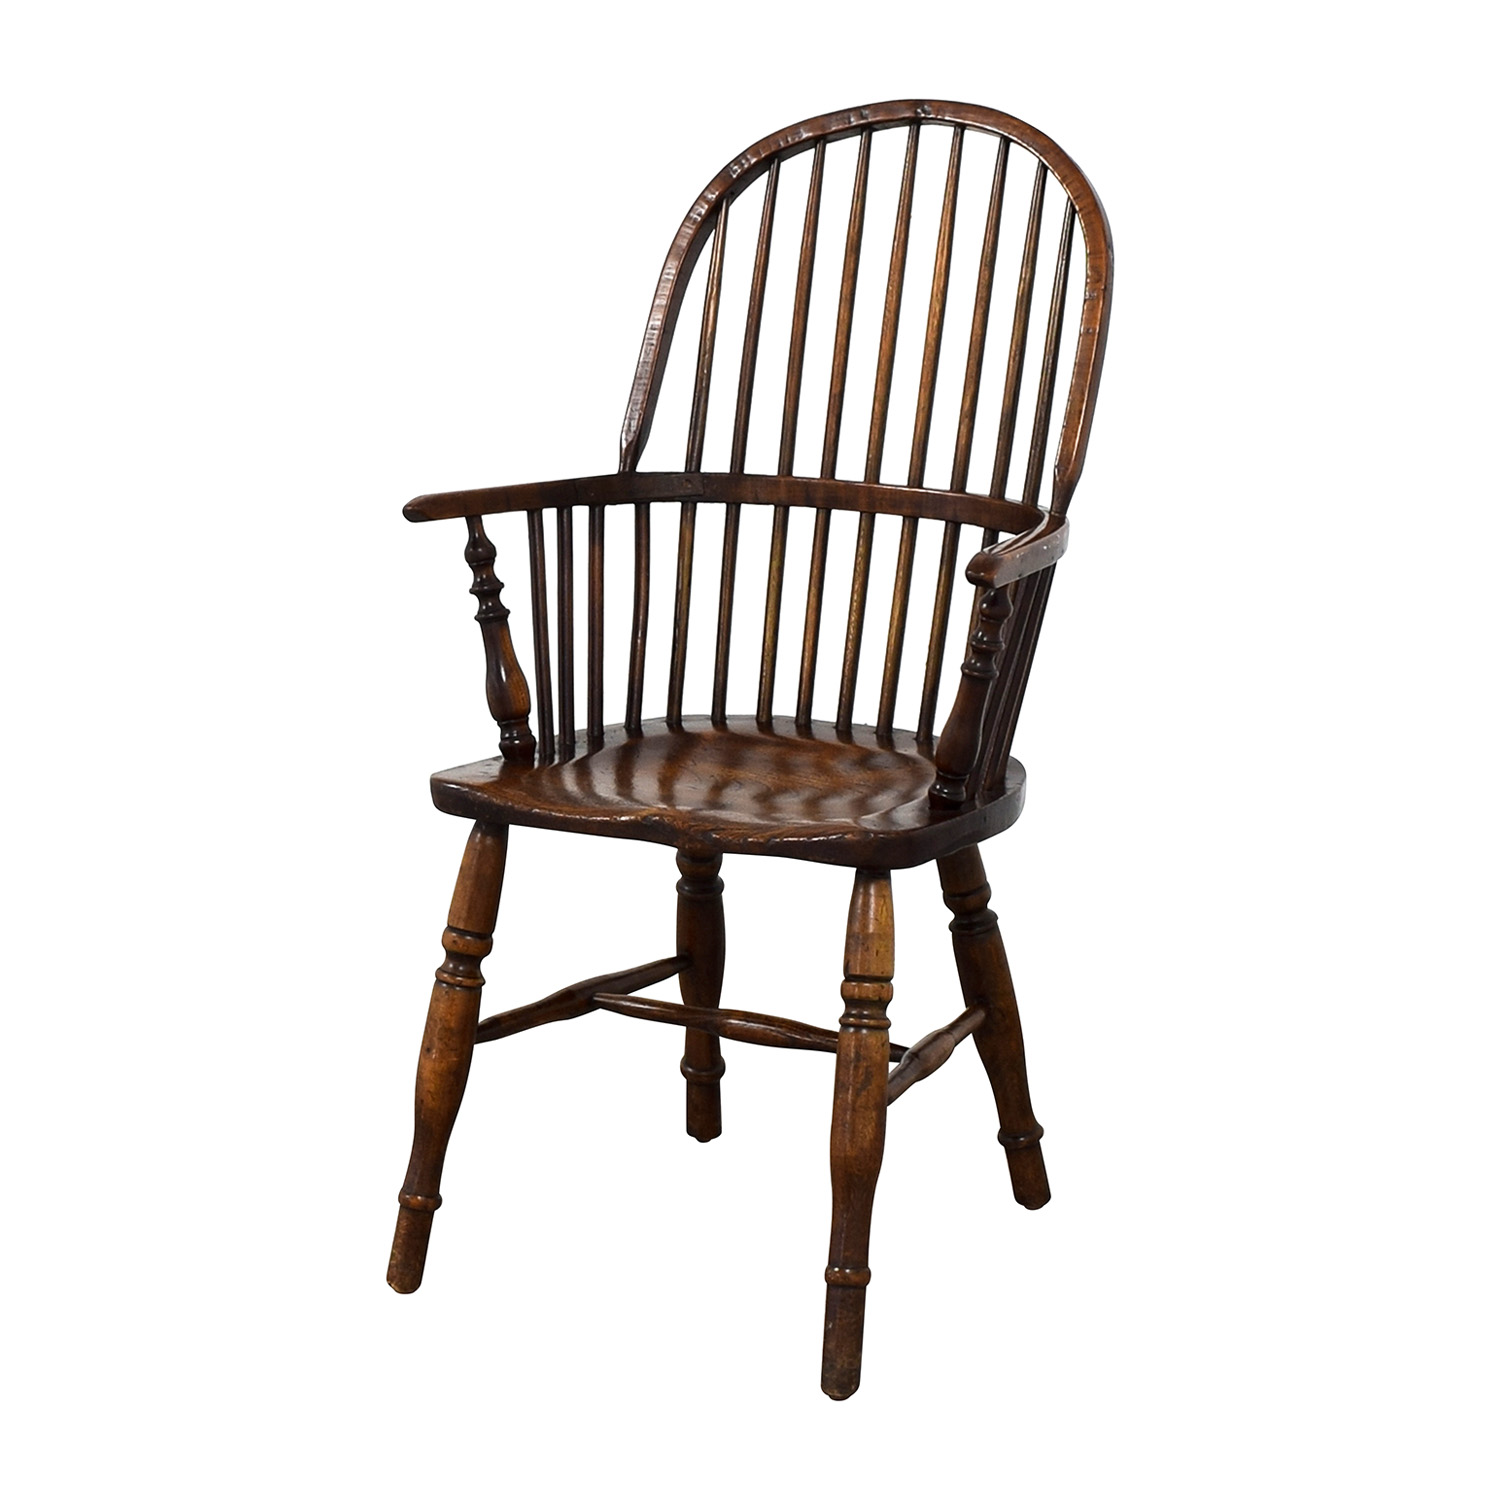 Antique Windsor Arm Chair / Chairs